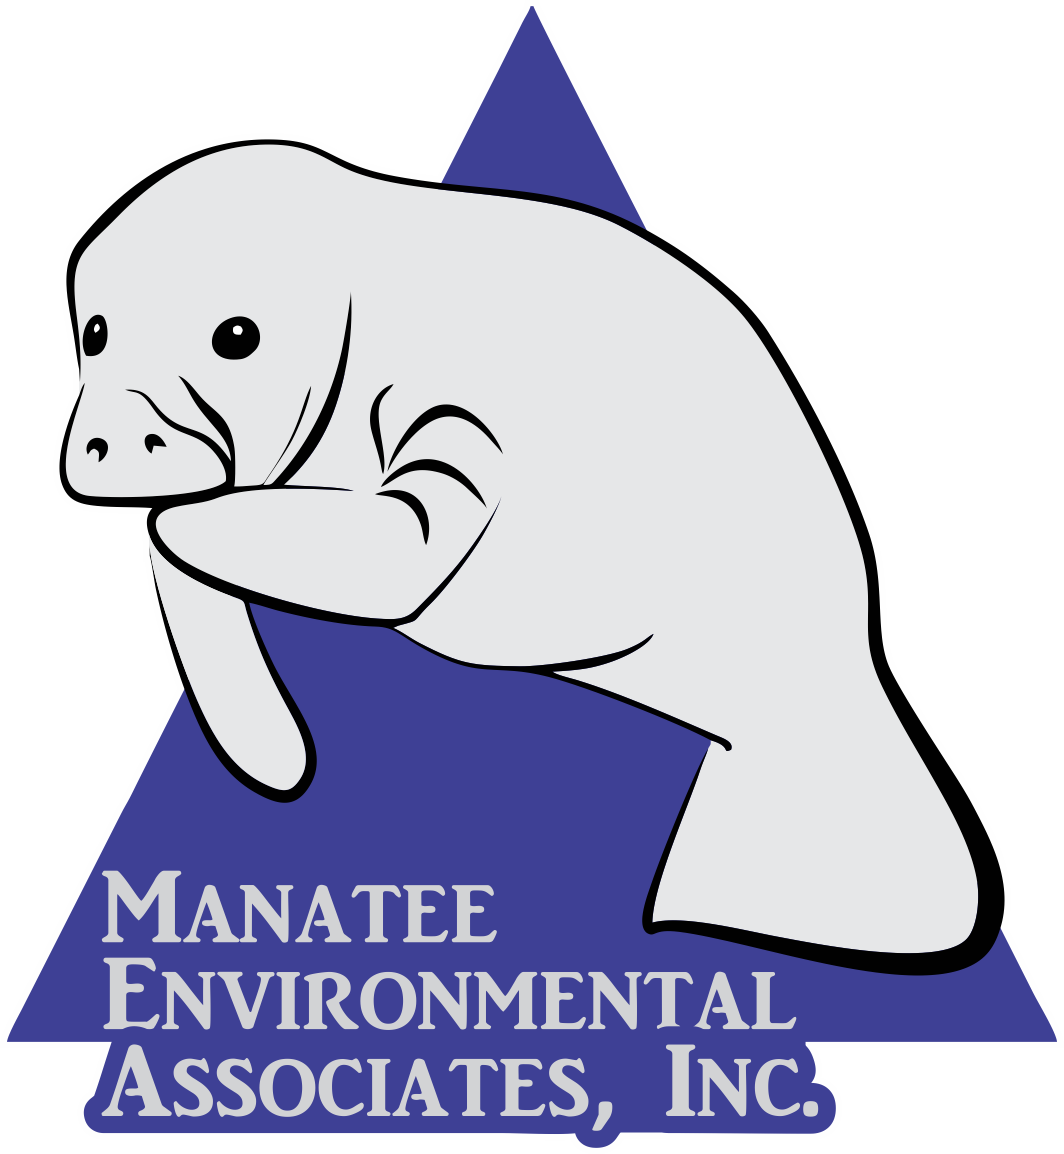 Manatee clipart purple. Free on dumielauxepices net